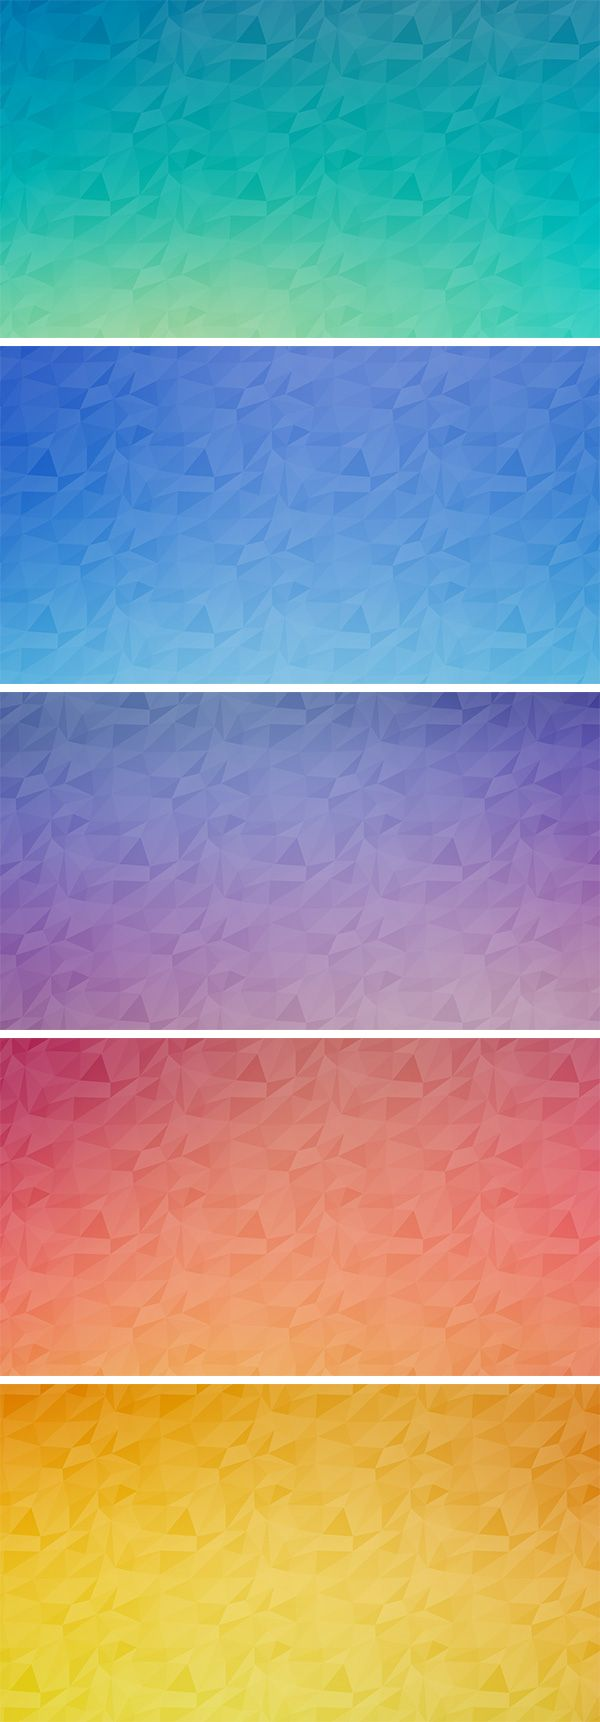 Seamless Polygon Backgrounds Vol.2